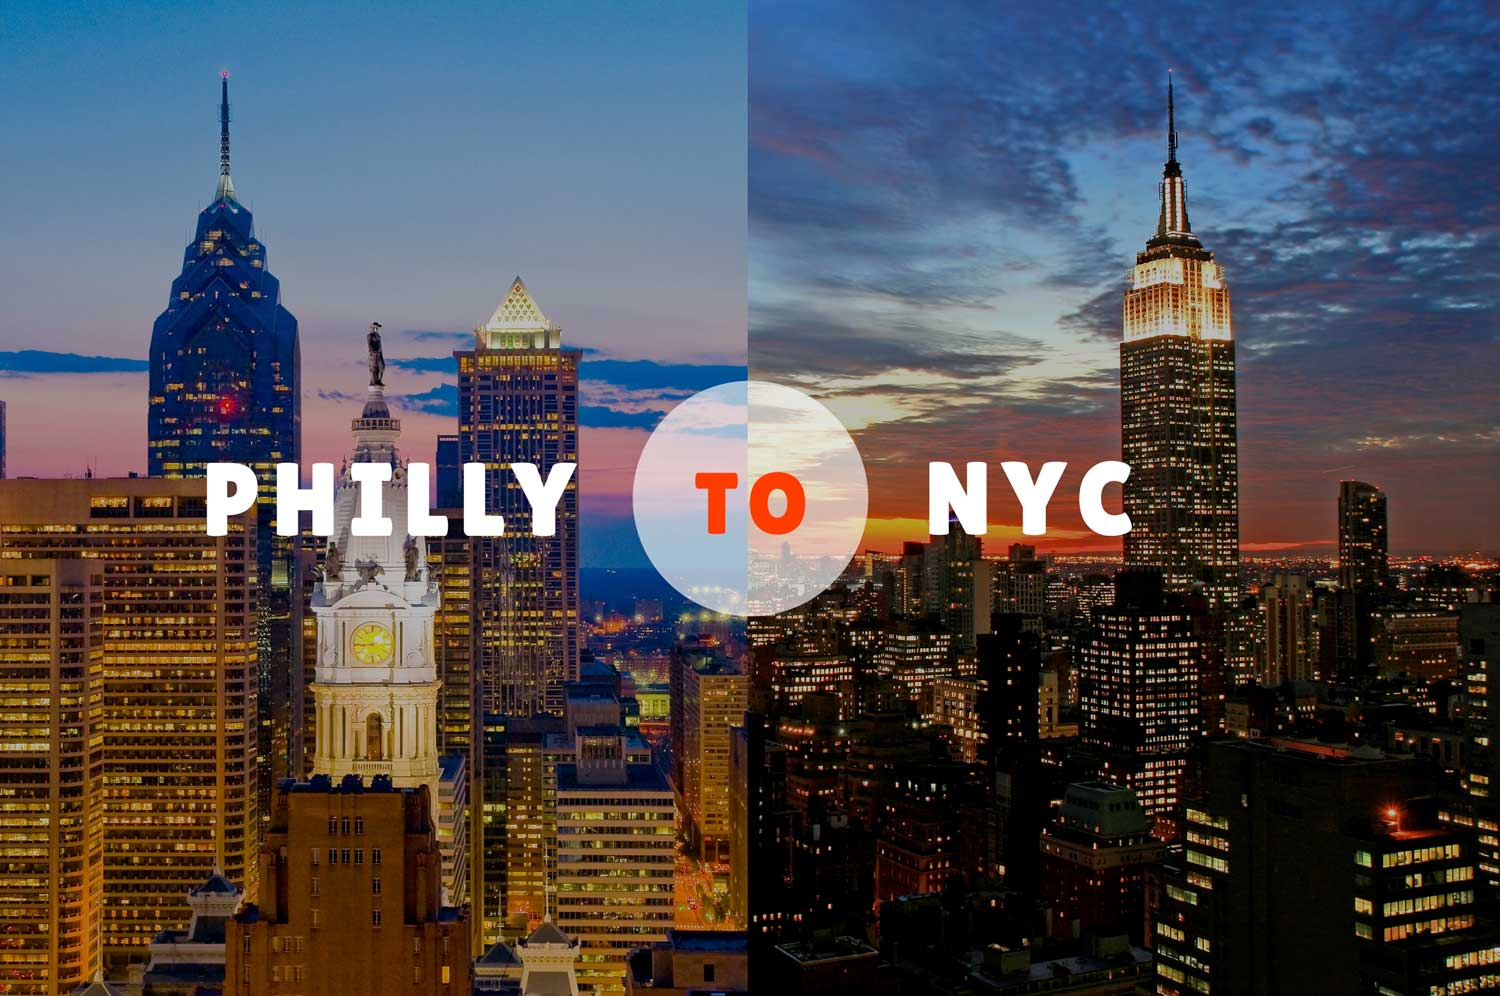 Shuttle Service Philly to NYC - 5 Better Ways to Manage your Transportation